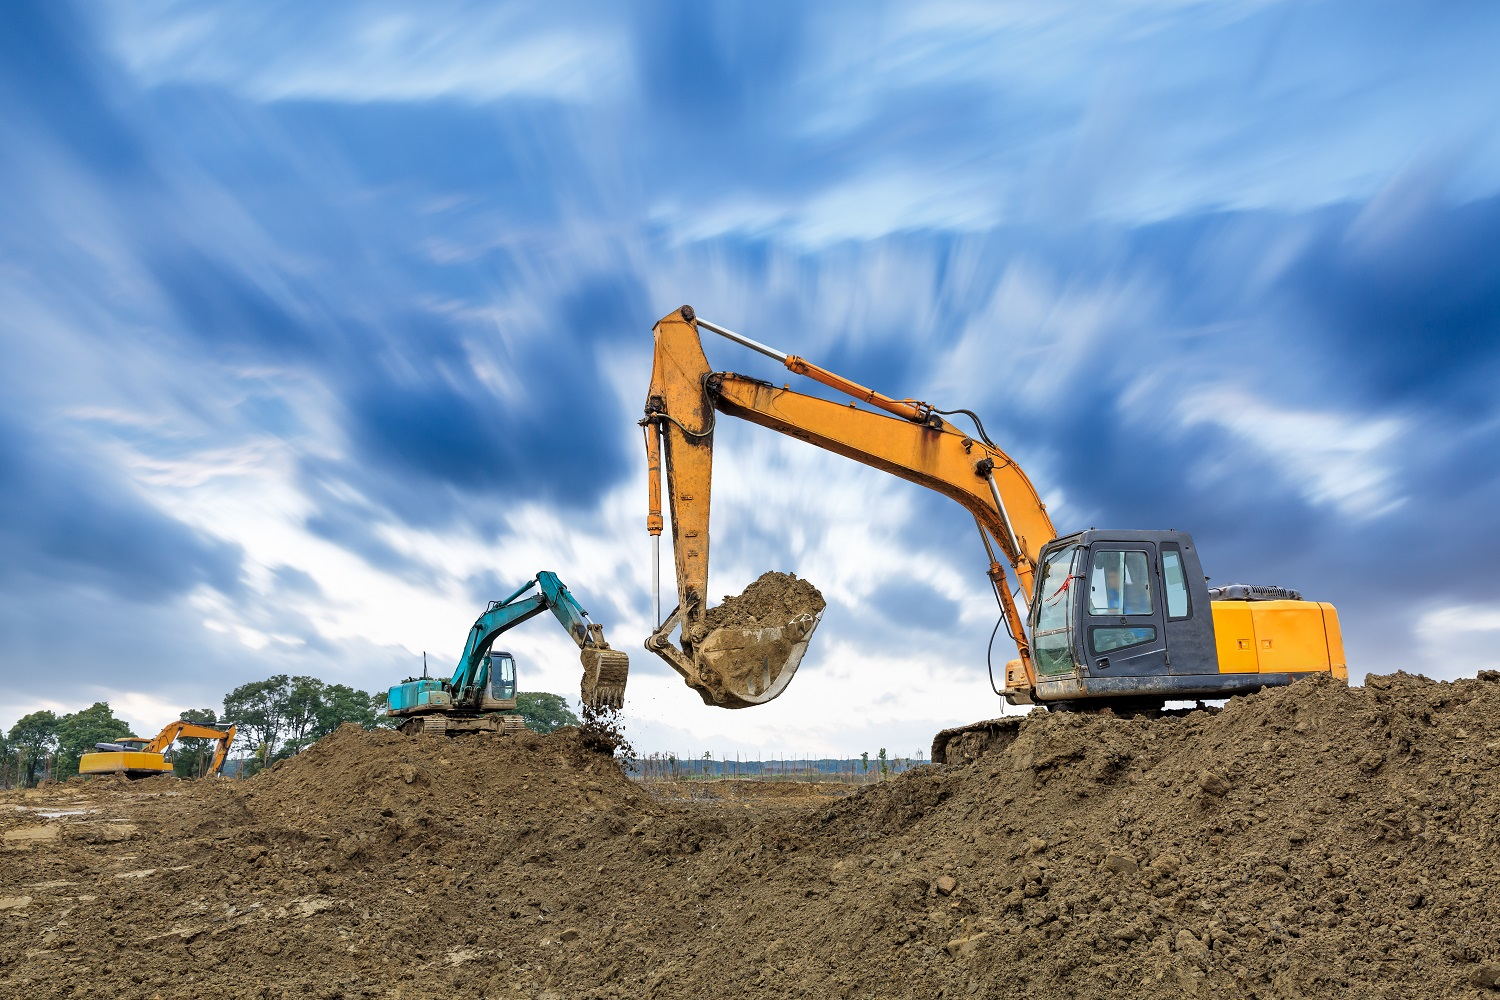 Failure to Implement Planned Safe System of Work Led to Excavator Incident